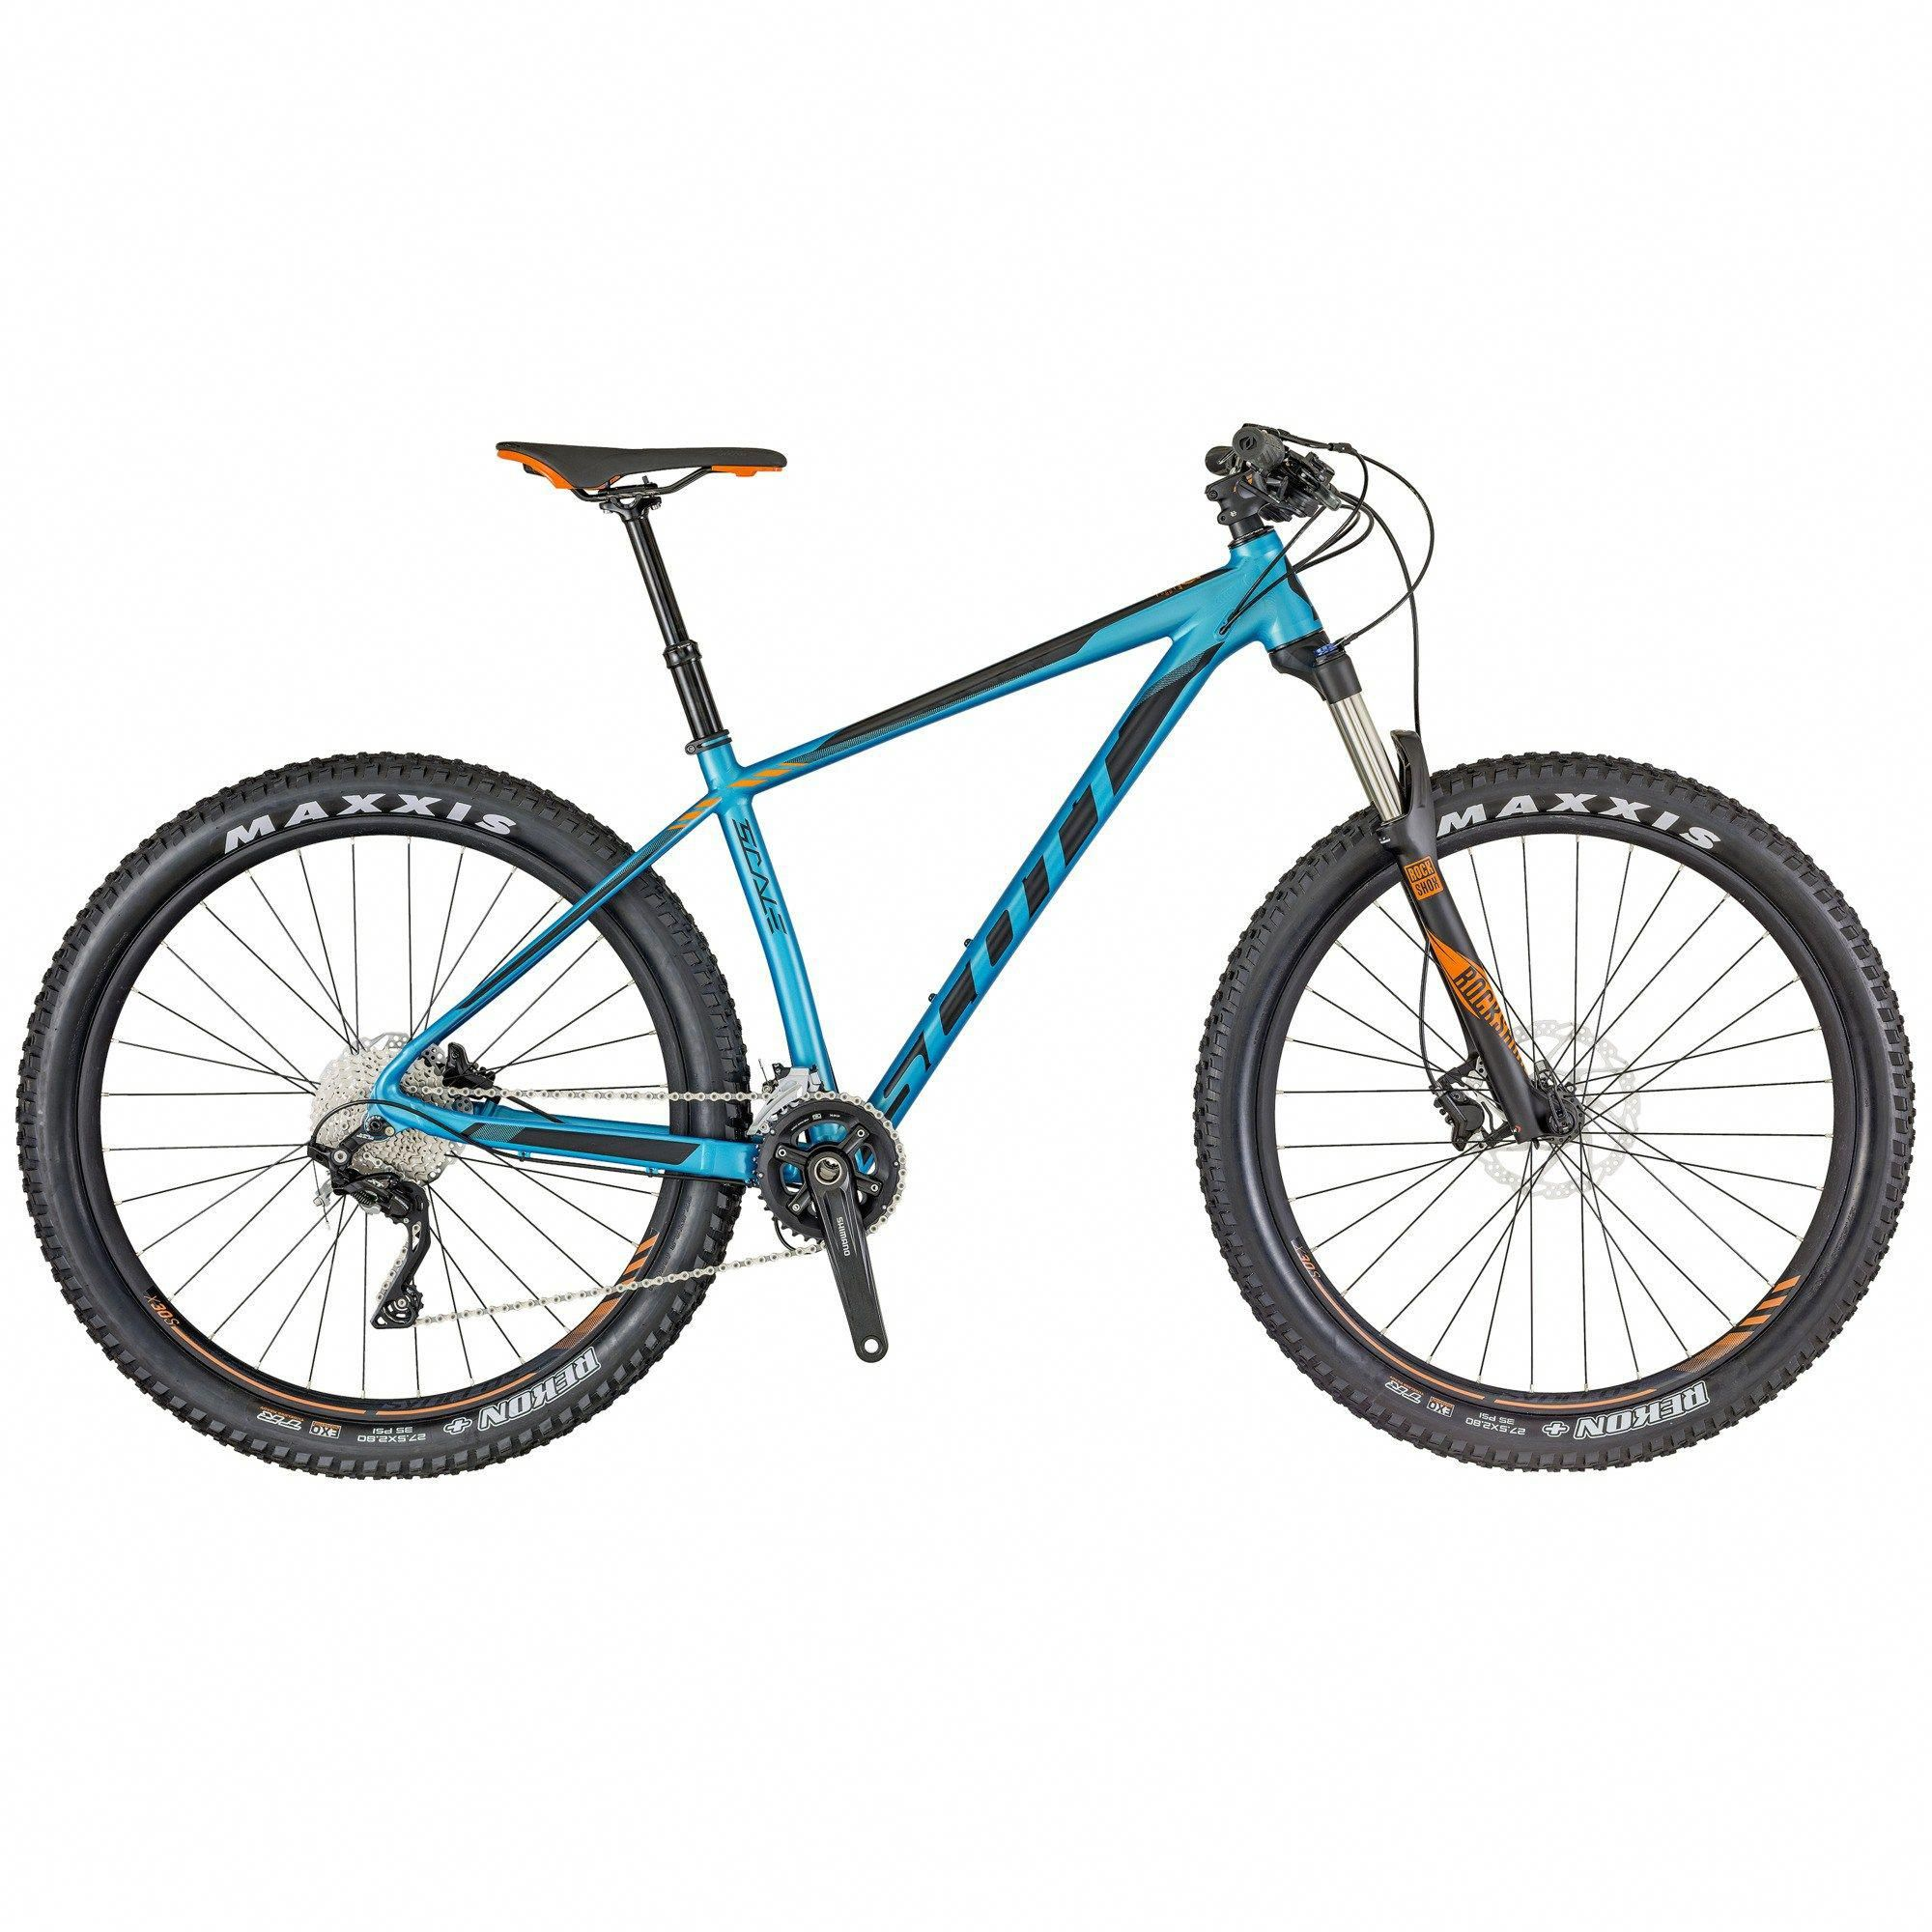 Bicycle Maintenance In 2020 With Images Folding Mountain Bike